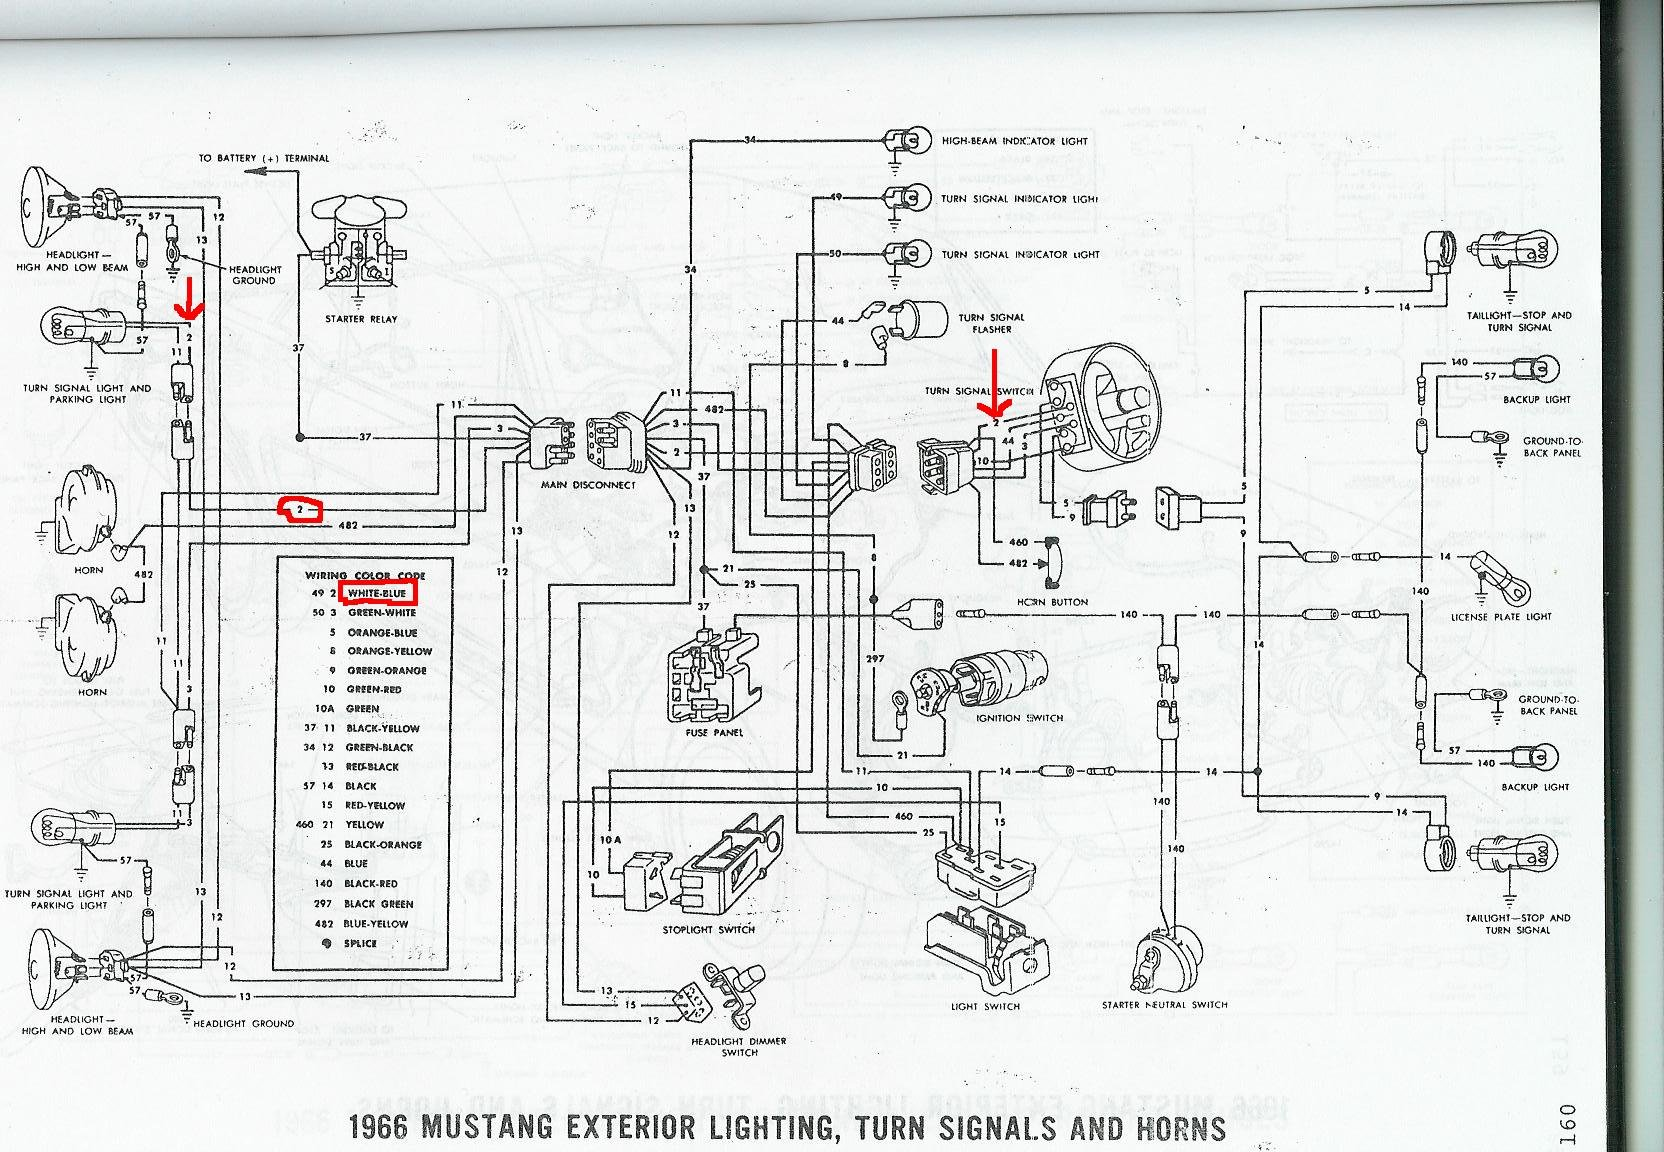 hight resolution of 1966 mustang interior lights wiring harness diagram